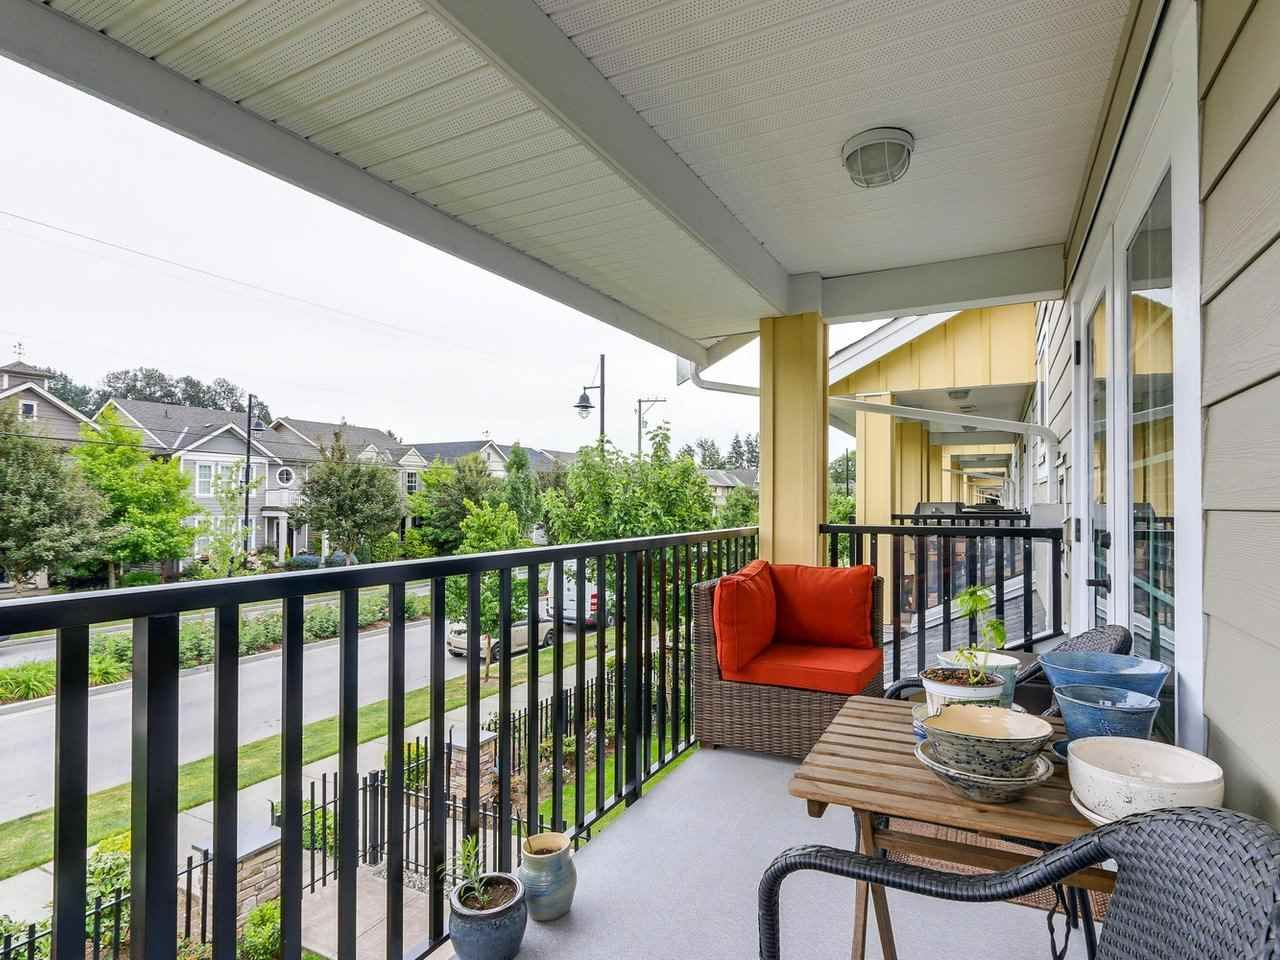 """Photo 16: Photos: 31 17171 2B Avenue in Surrey: Pacific Douglas Townhouse for sale in """"AUGUSTA TOWNHOUSES"""" (South Surrey White Rock)  : MLS®# R2280398"""